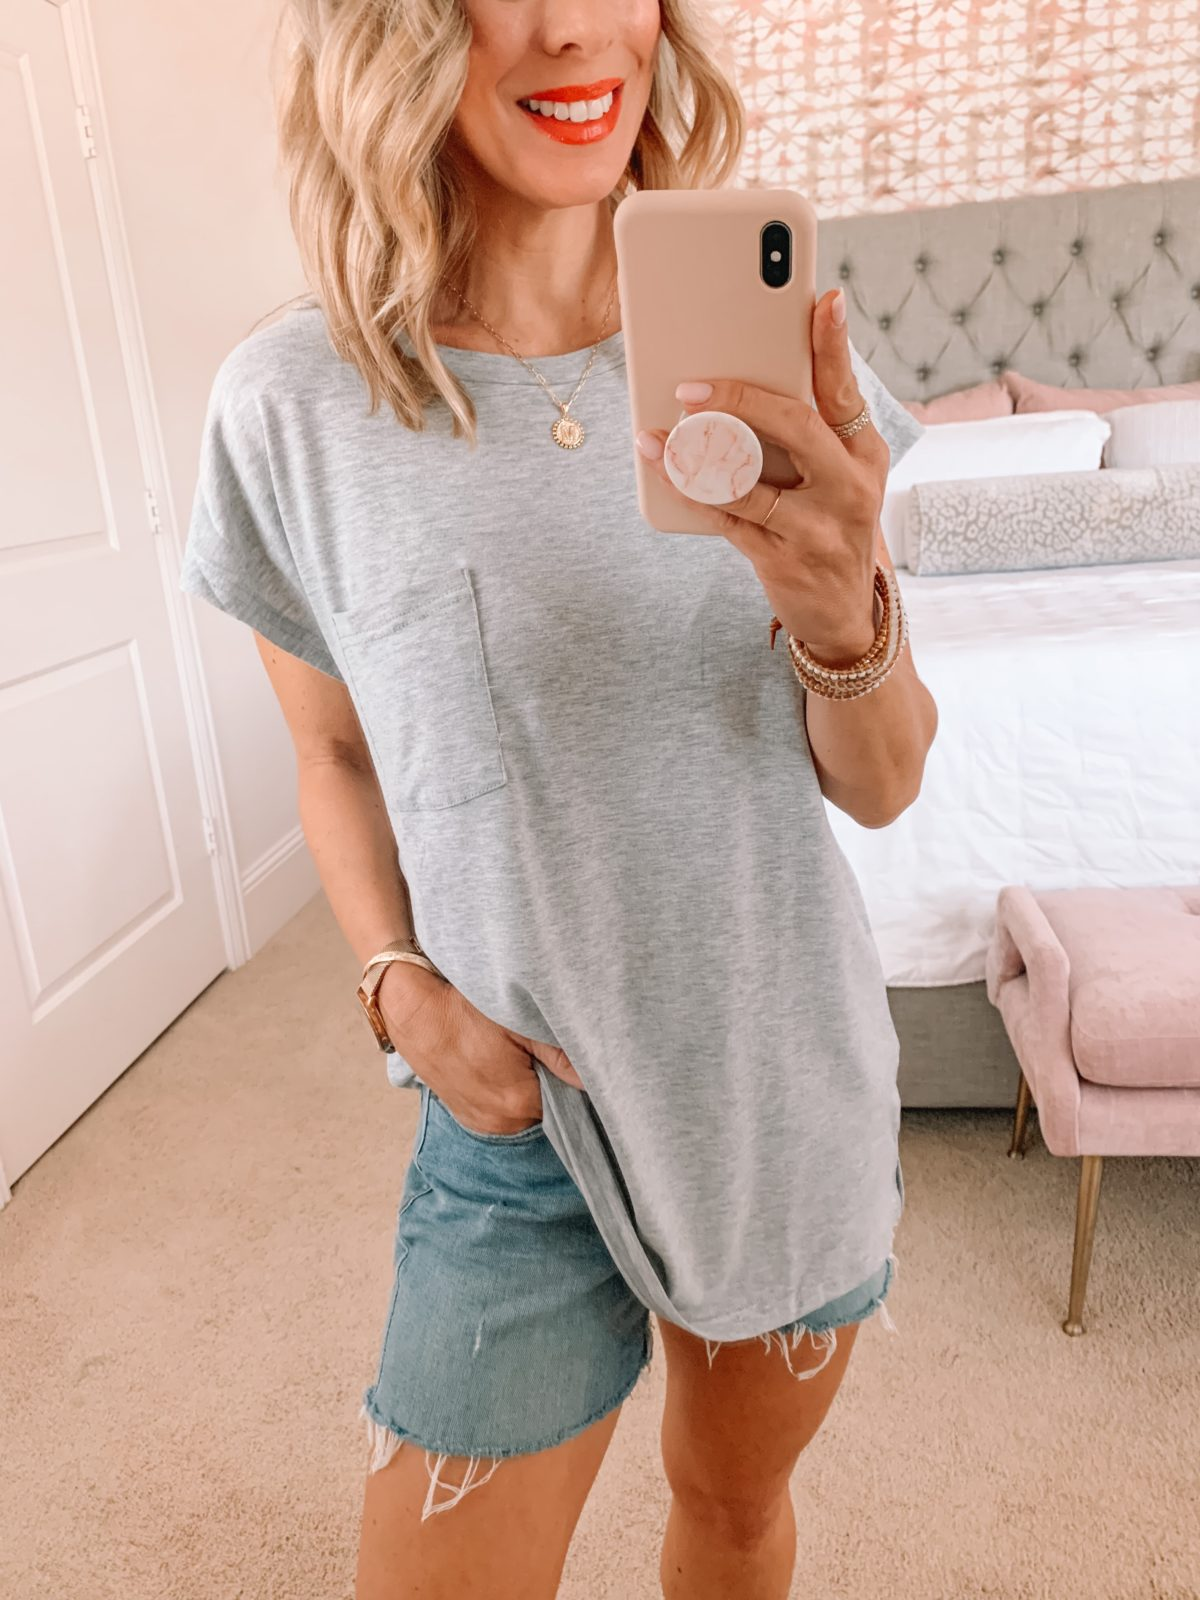 Amazon Fashion Faves, Grey Cap Sleeve Tee and Denim Shorts with Sandals